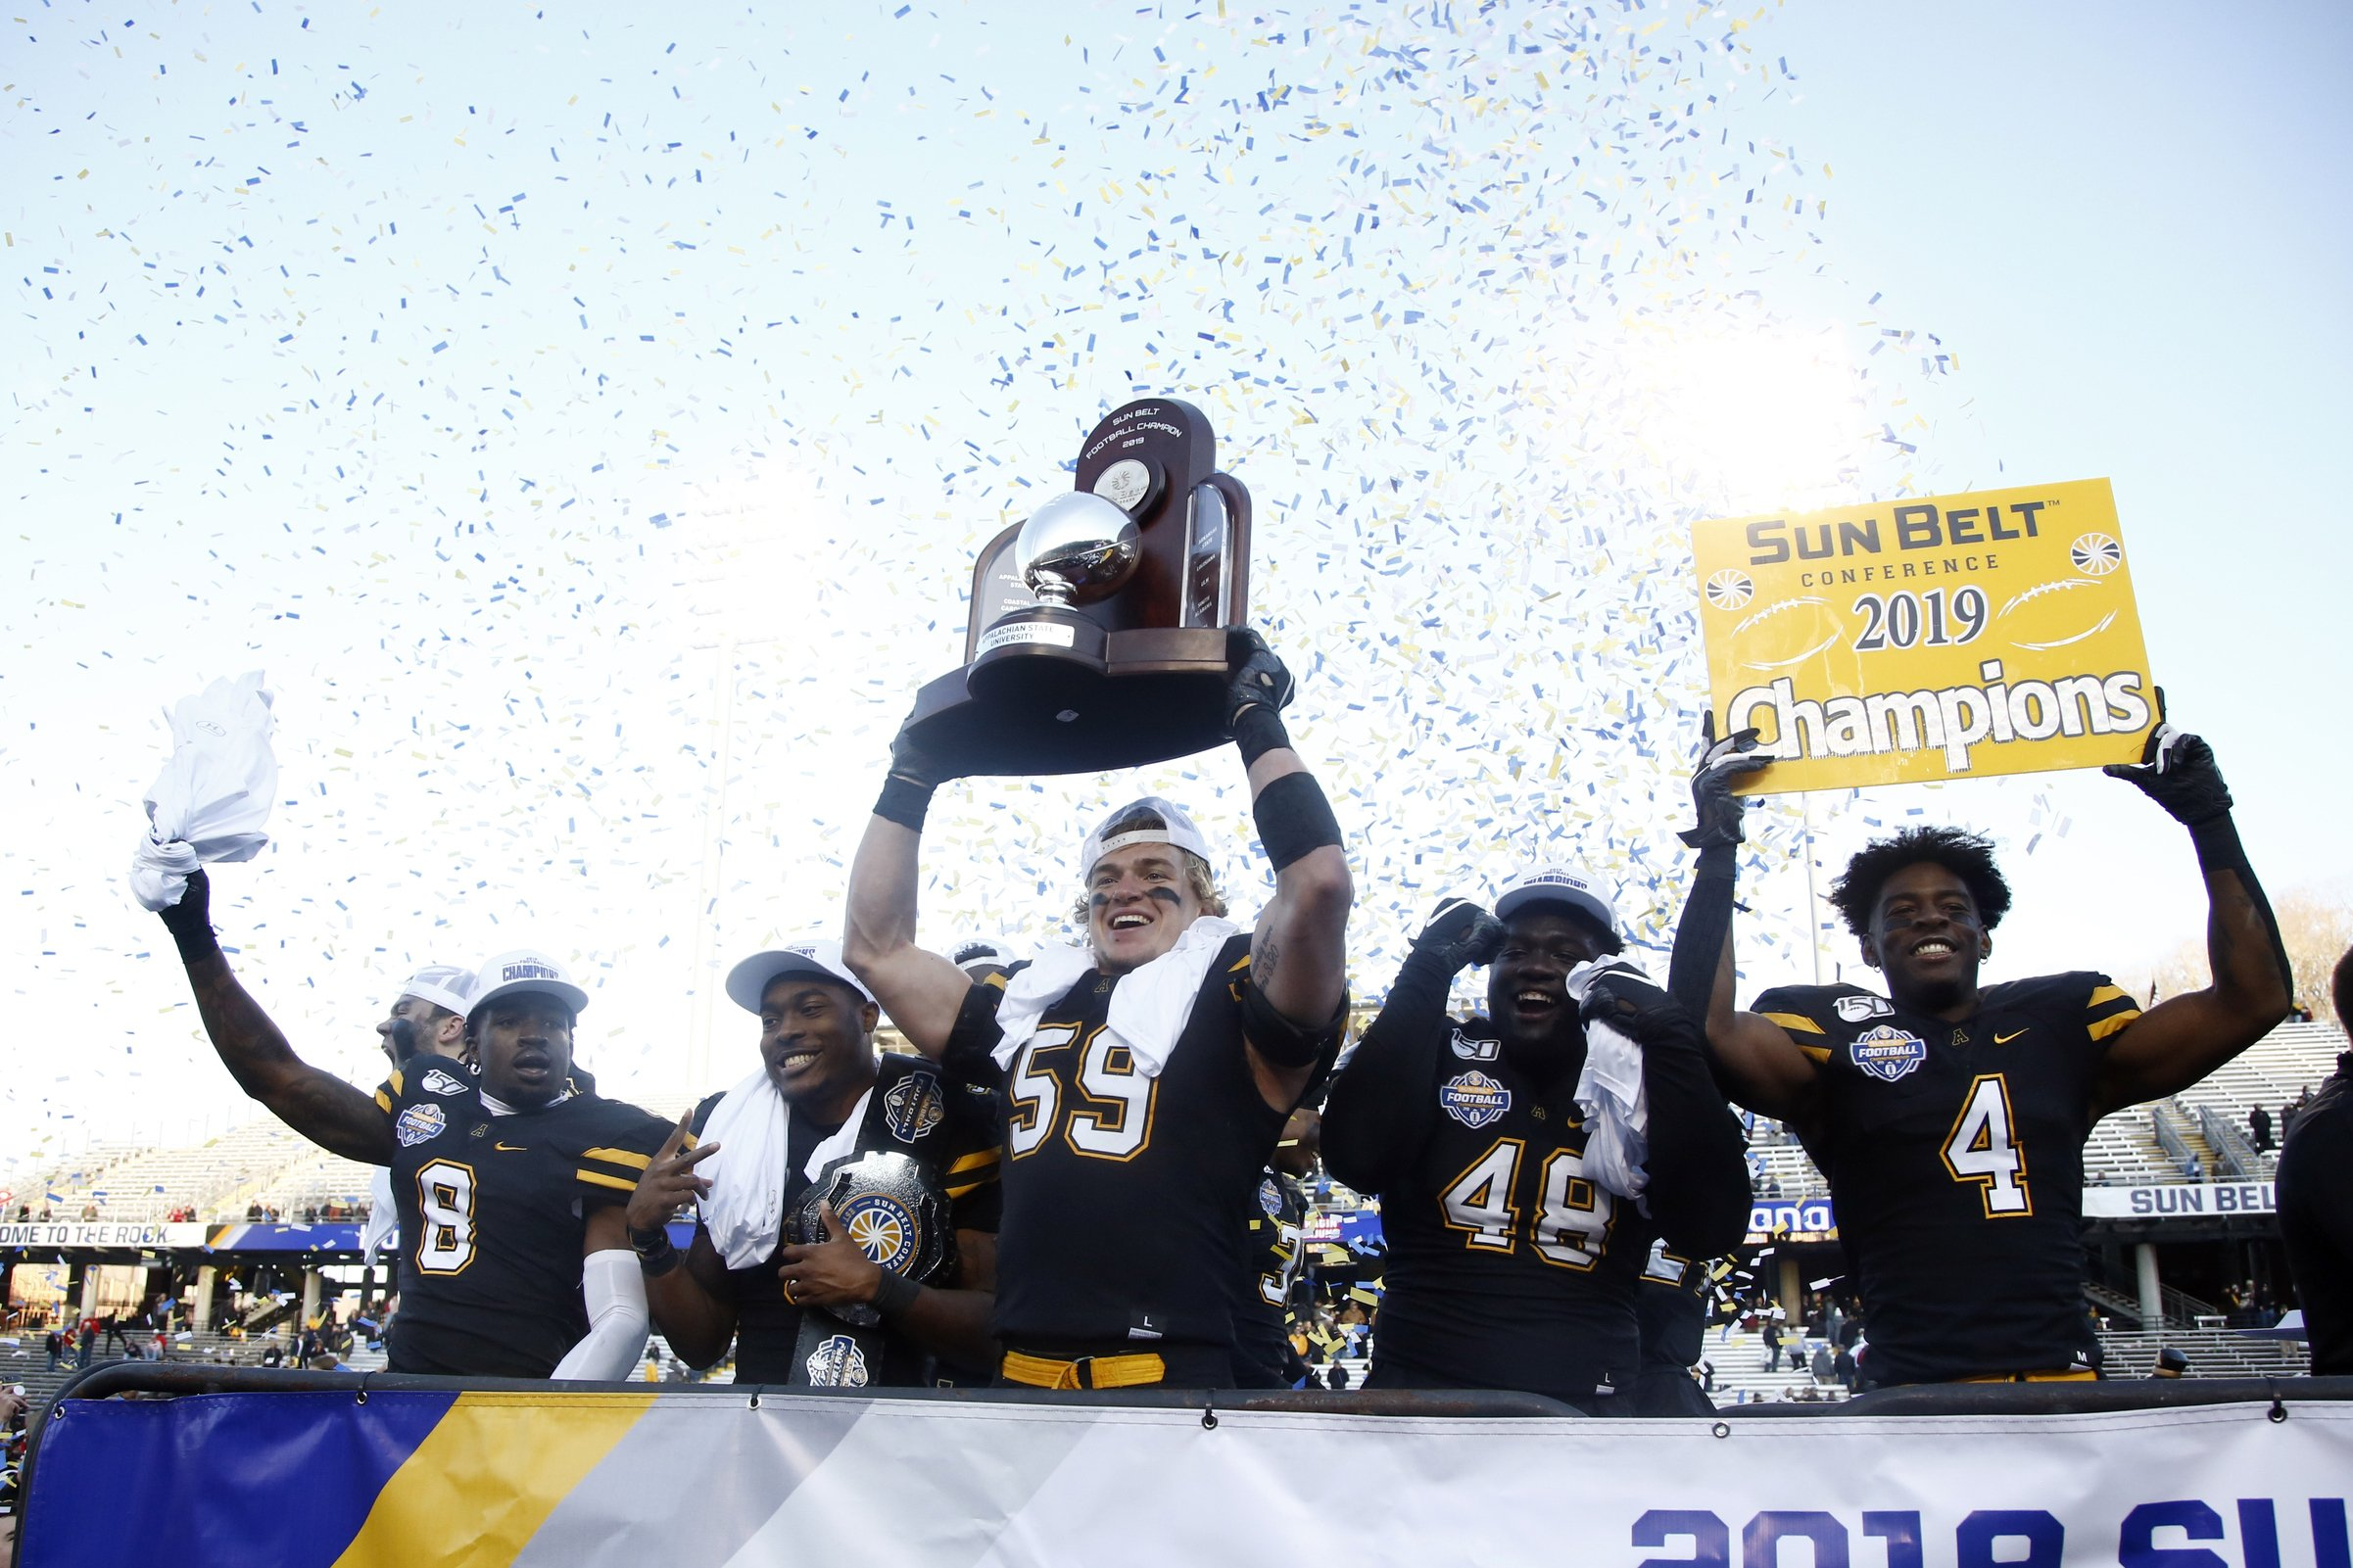 Evans' 3 TDs lead No. 20 App State to Sun Belt title, 45-38